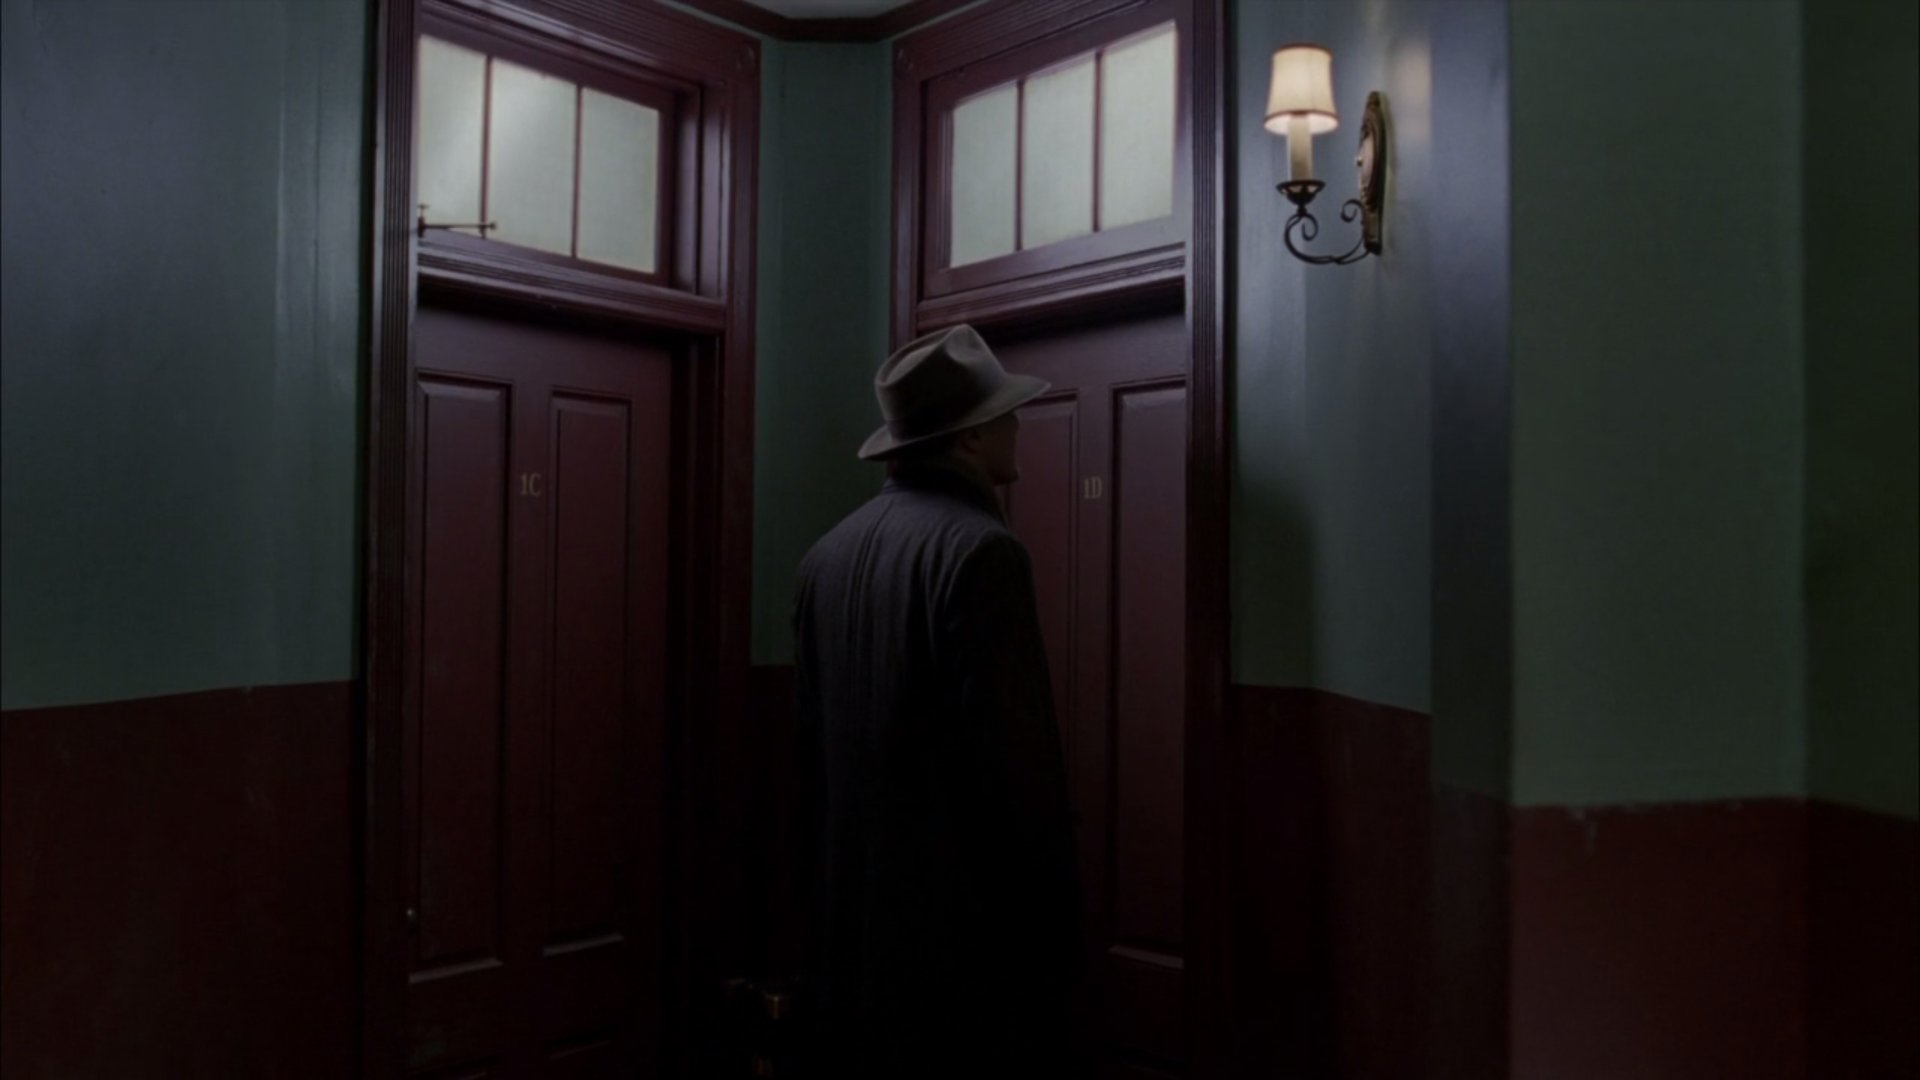 Boardwalk Empire - 03x01 - Resolution cap 3